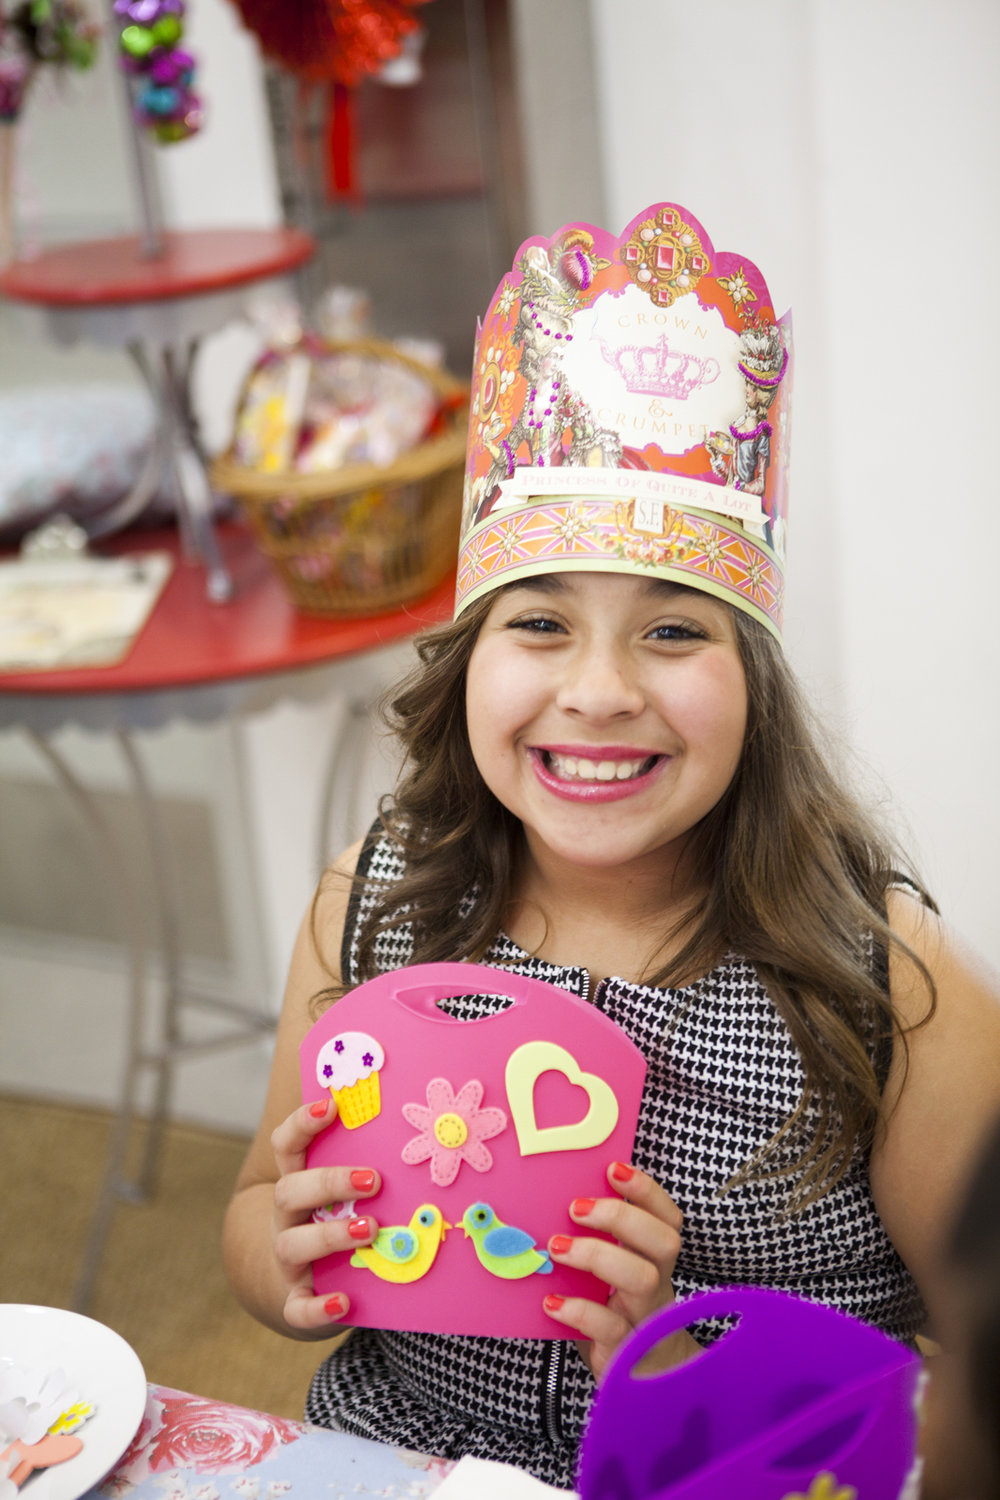 sophia_tea_party_crown_and_crumpet_san_francisco_photography_040.jpg